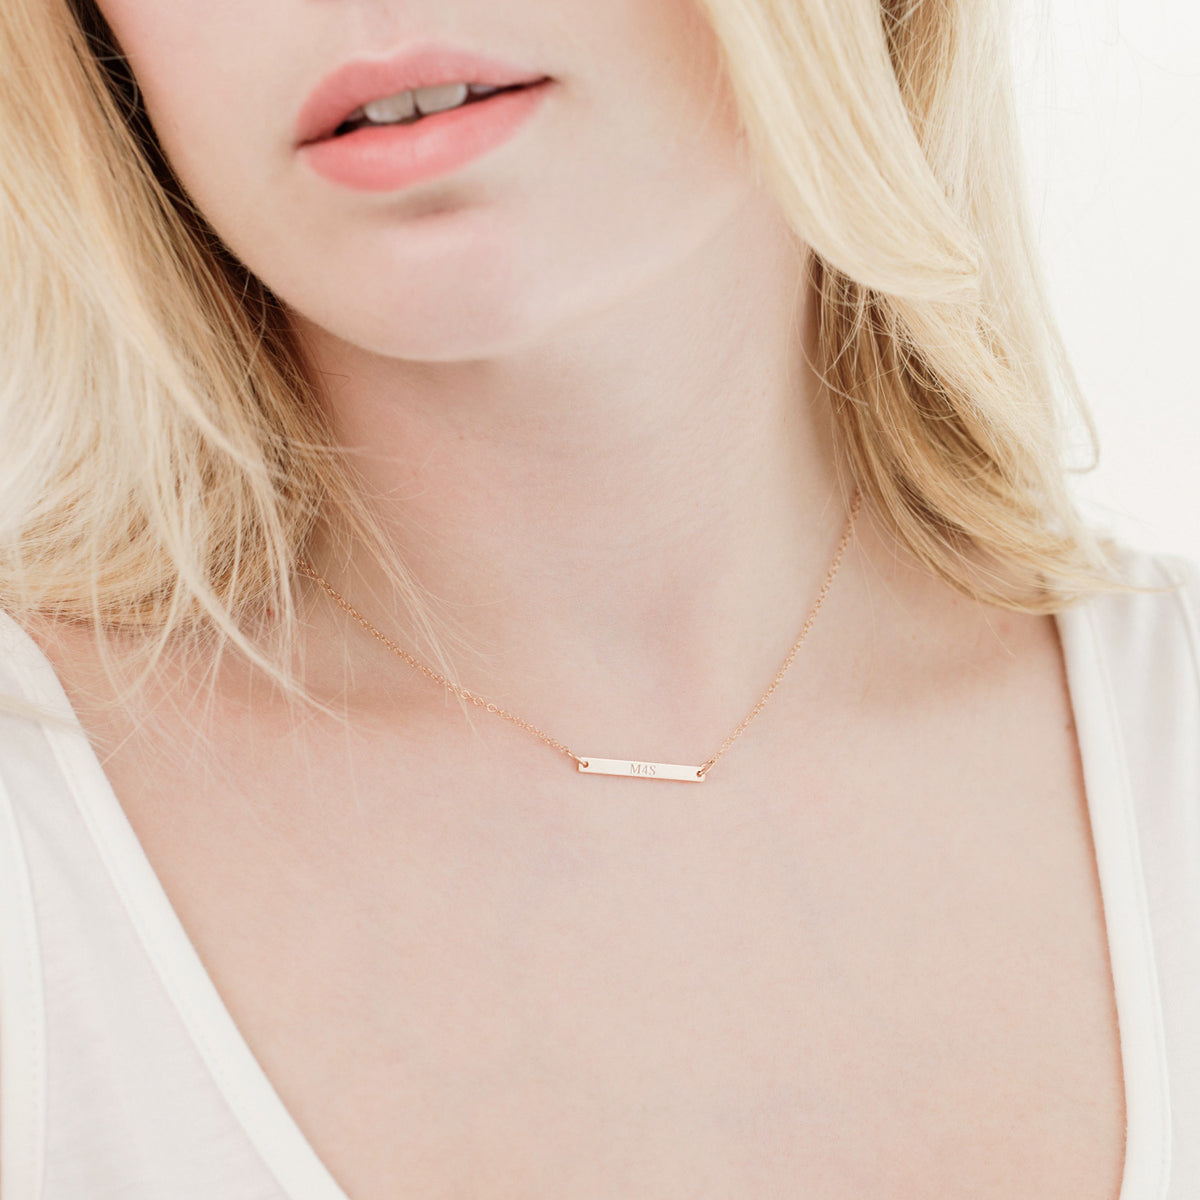 Personalised bar 'love' necklace 'Leonie'